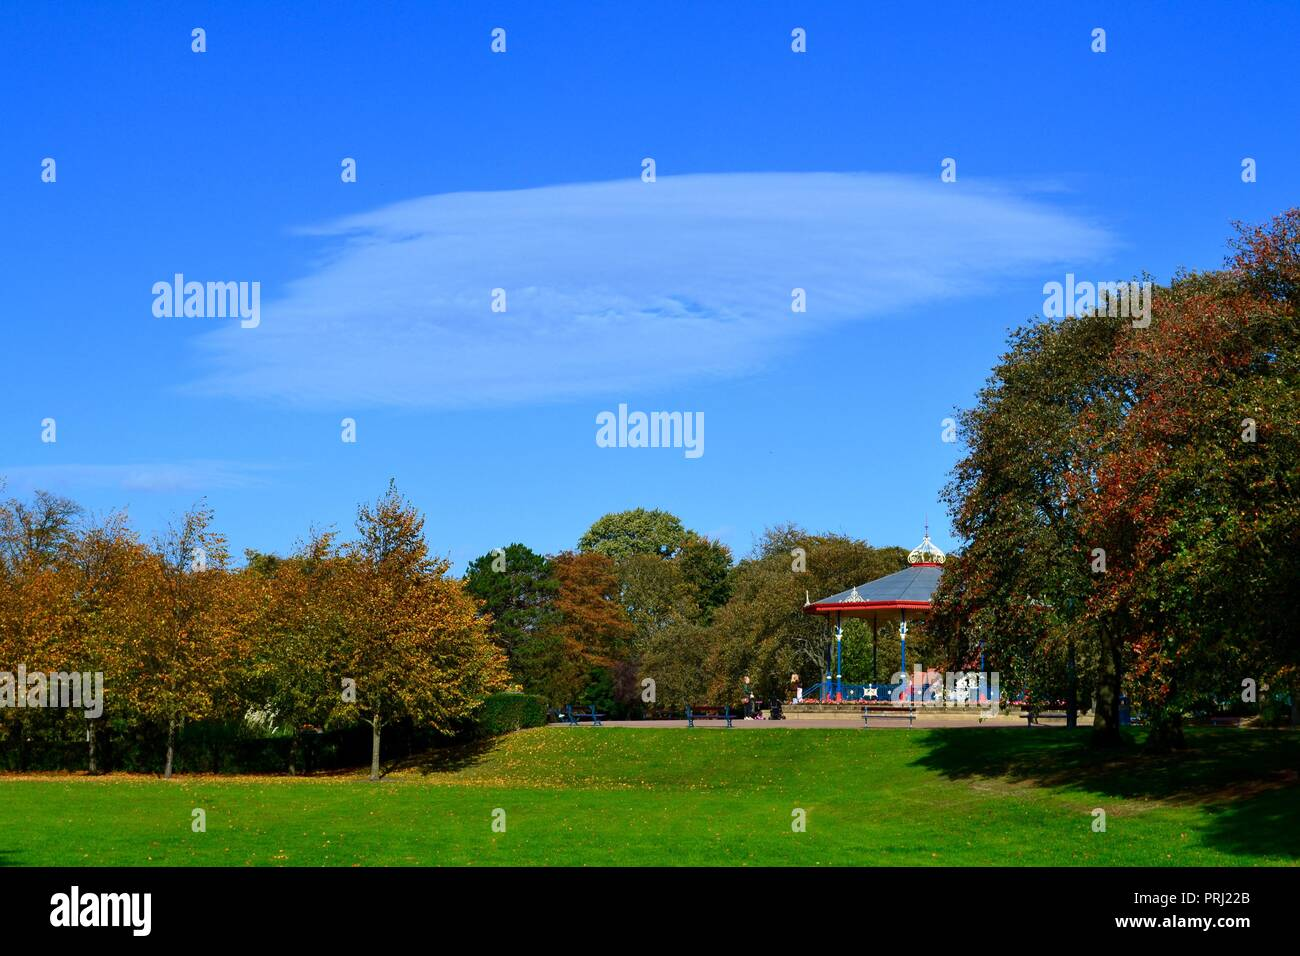 Naturally lit, colourful images of the traditional Victorian style Bandstand and its' surroundings in Autumn at Ropner Park, Stockton-on-Tees, UK. Stock Photo